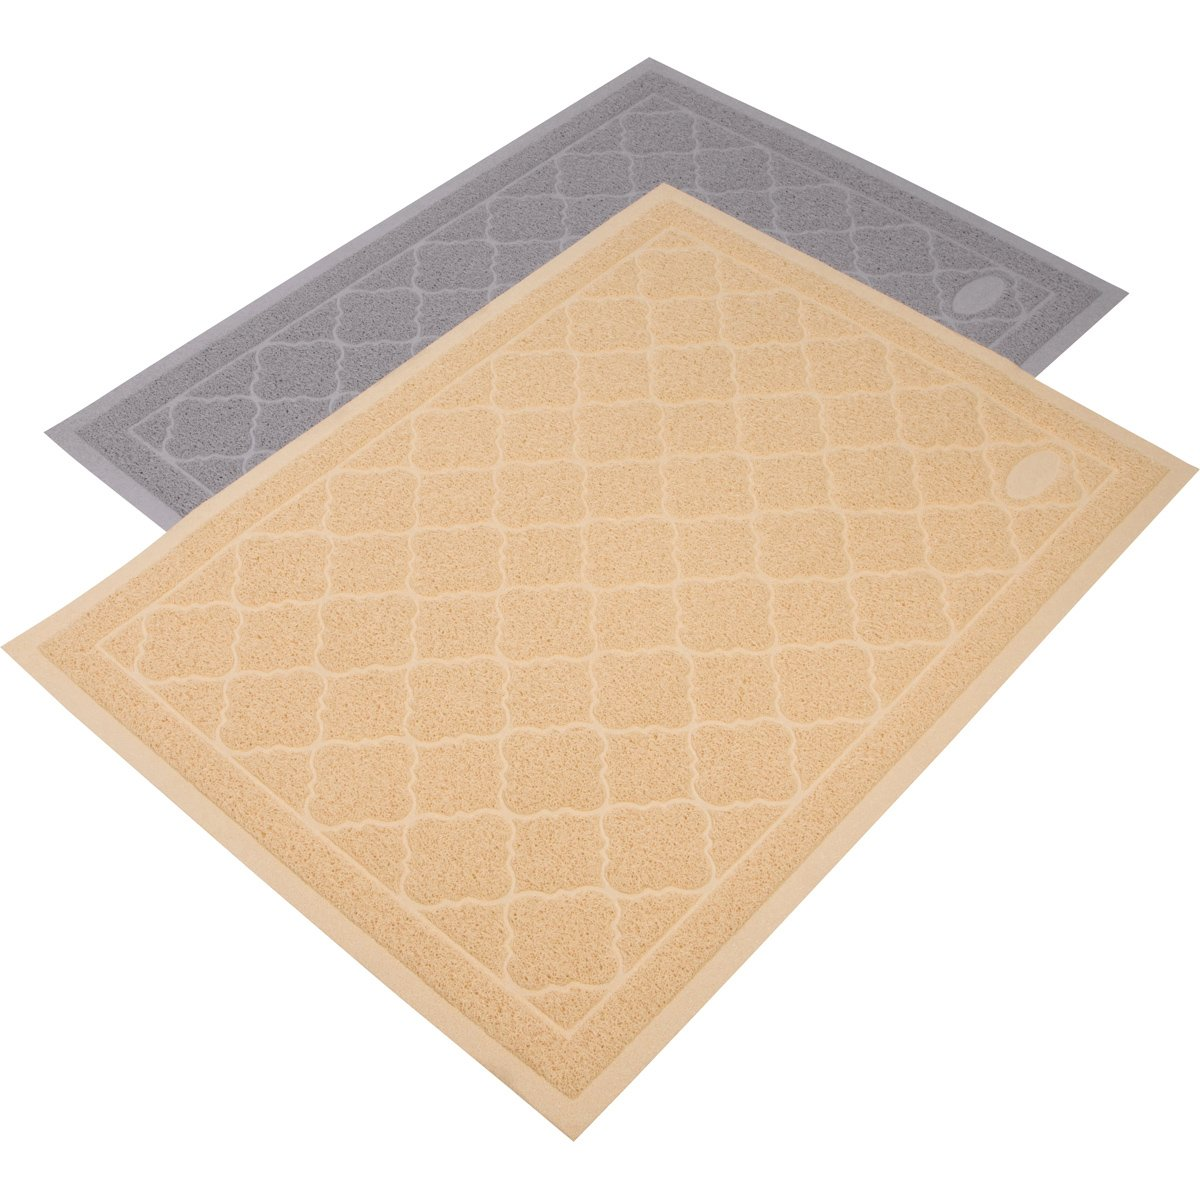 Beige Jumbo (47\ Beige Jumbo (47\ KOONIE Premium Cat Litter Mat, Litter Trapper, Non-Toxic, Non-Slip, Soft on Kitty Paws, Scatter Control, Durable and Easy to Clean, Jumbo Size (47  x 35 ), Beige